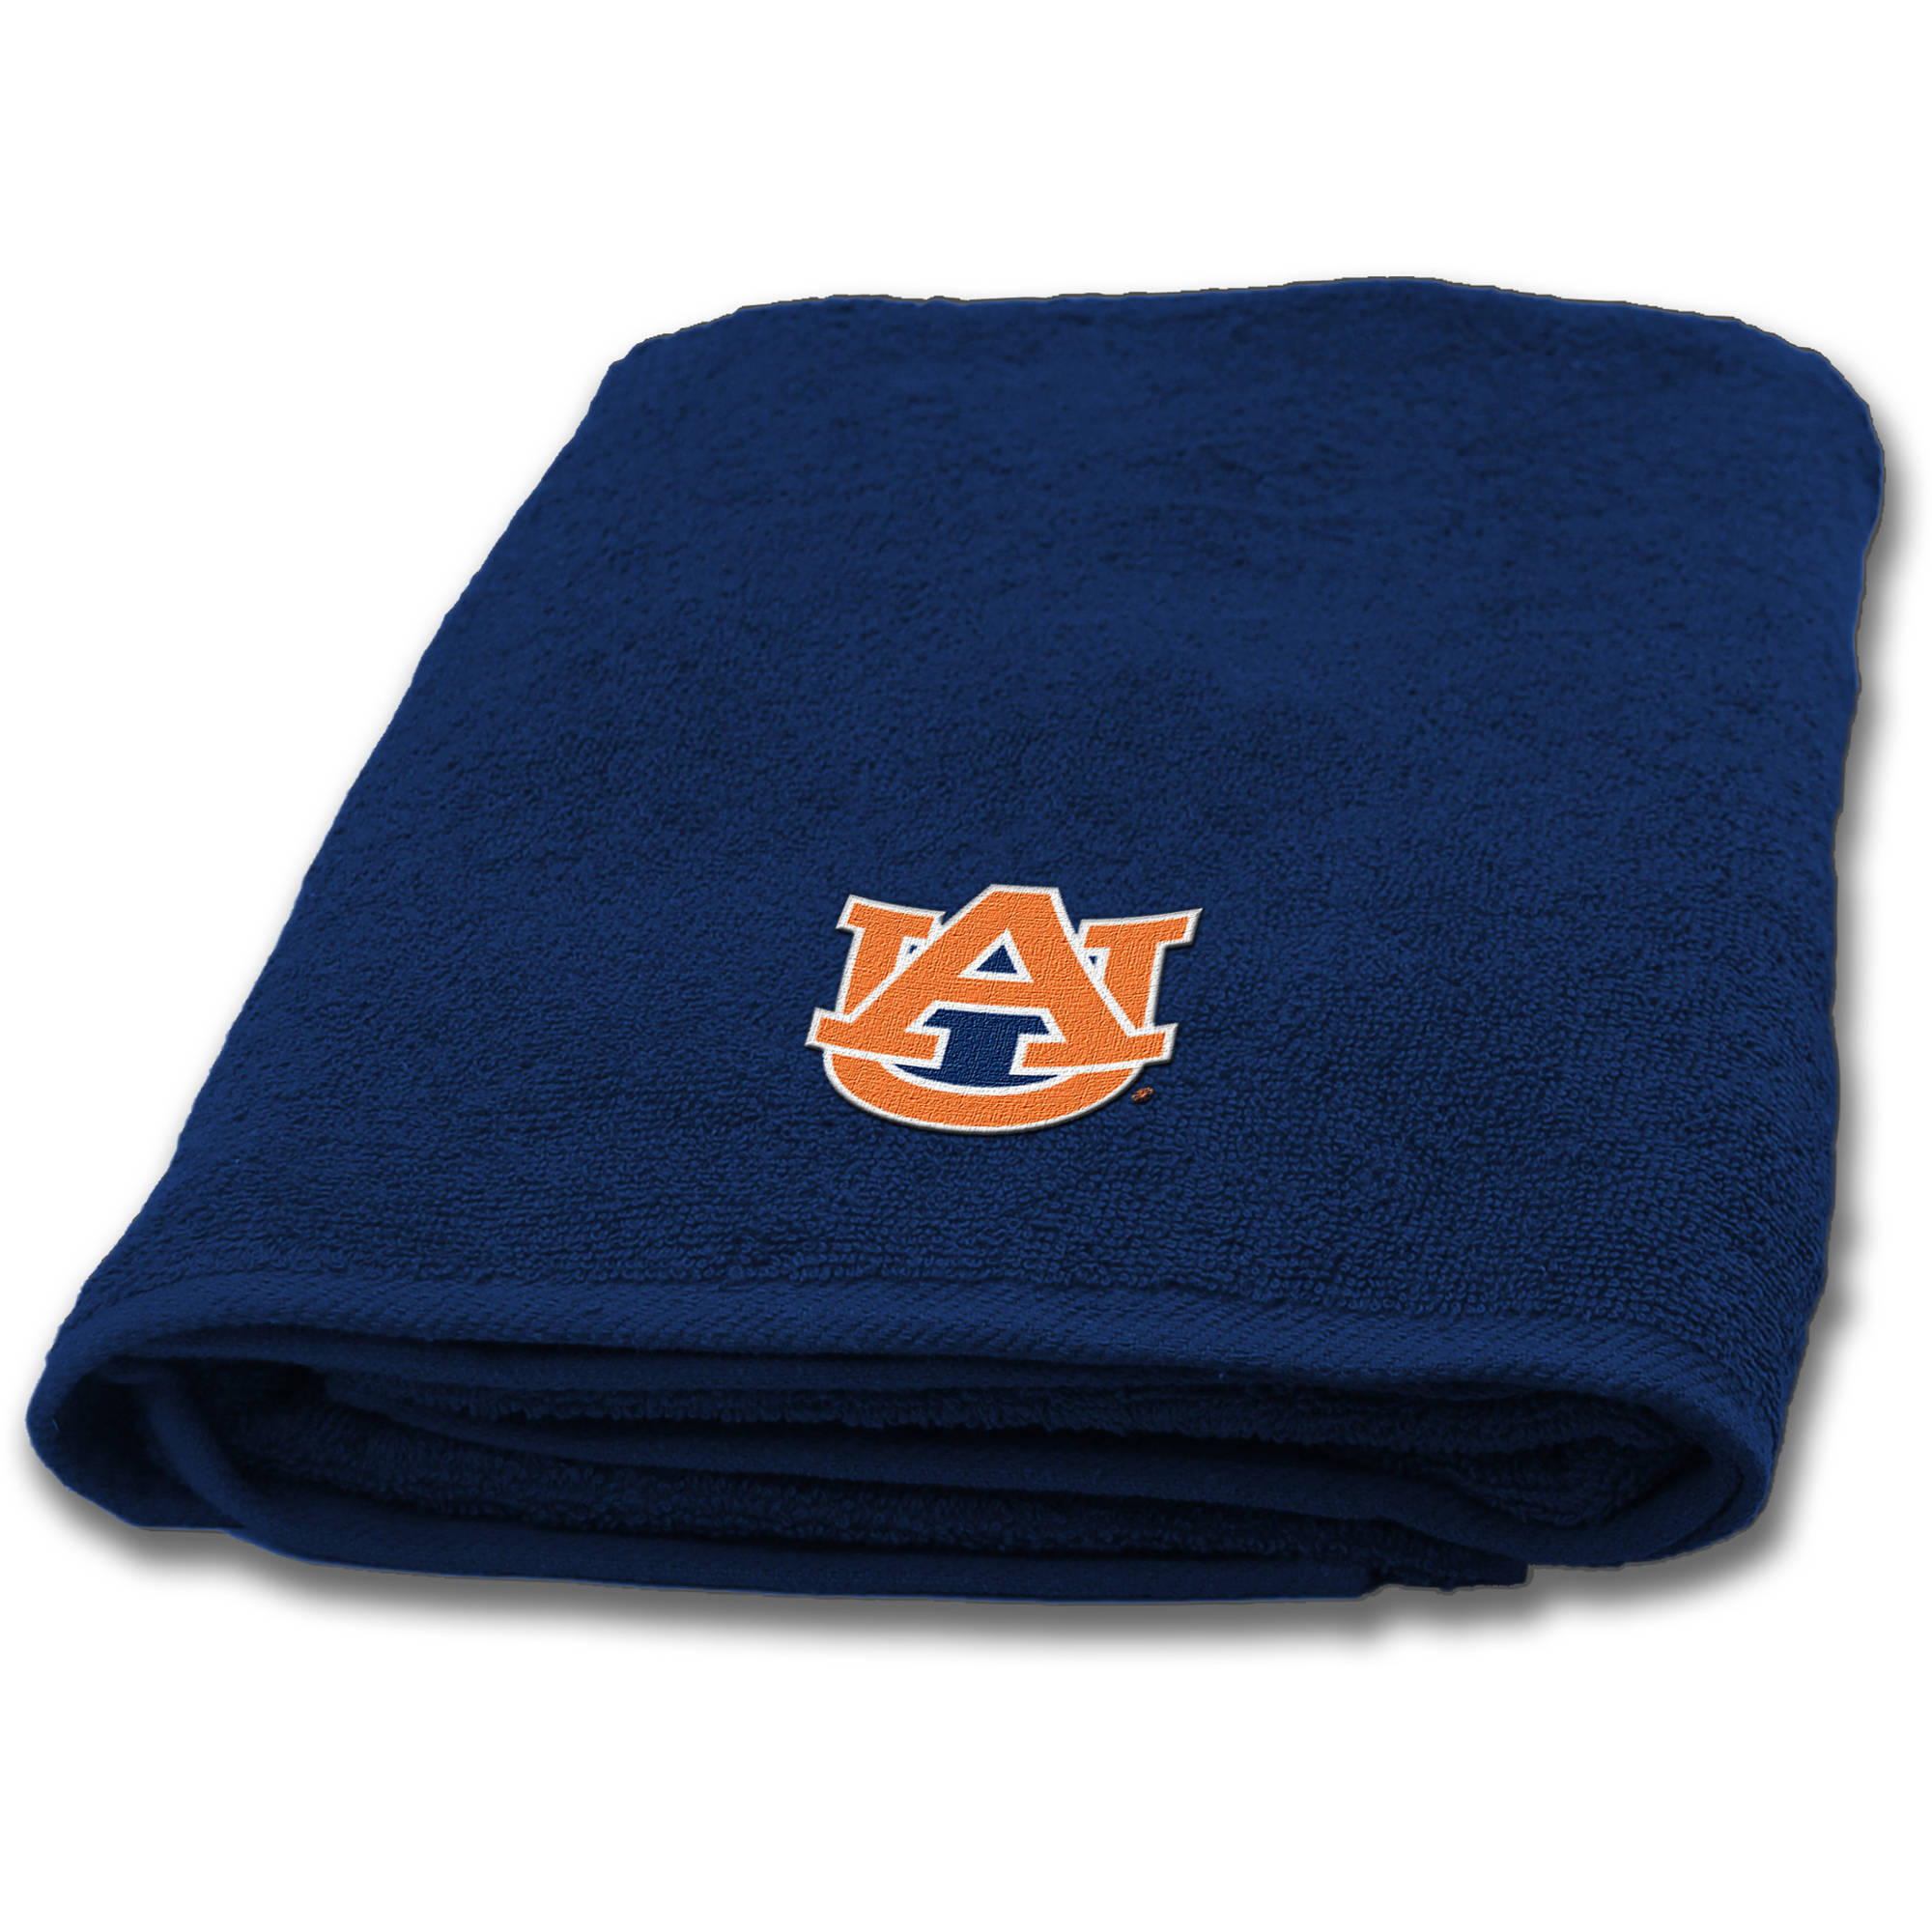 "NCAA Auburn Tigers 25""x50"" Applique Bath Towel"